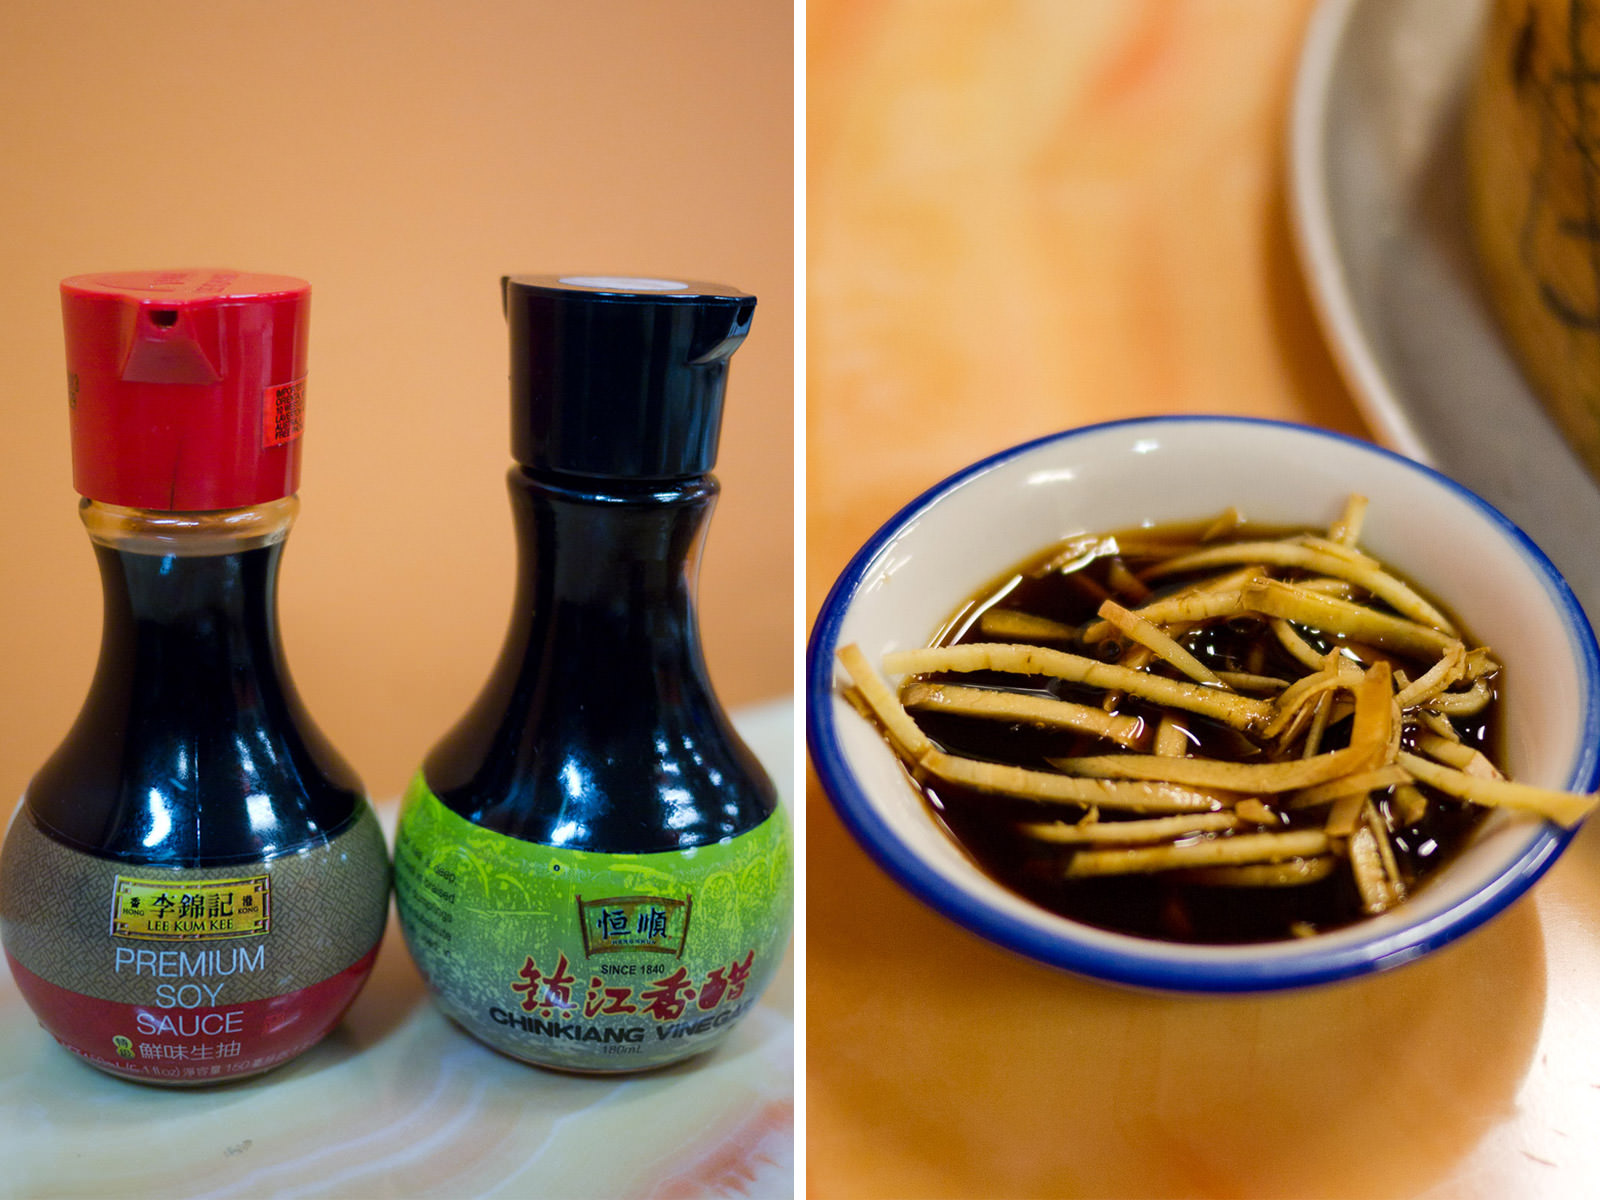 Soy sauce, vinegar and ginger